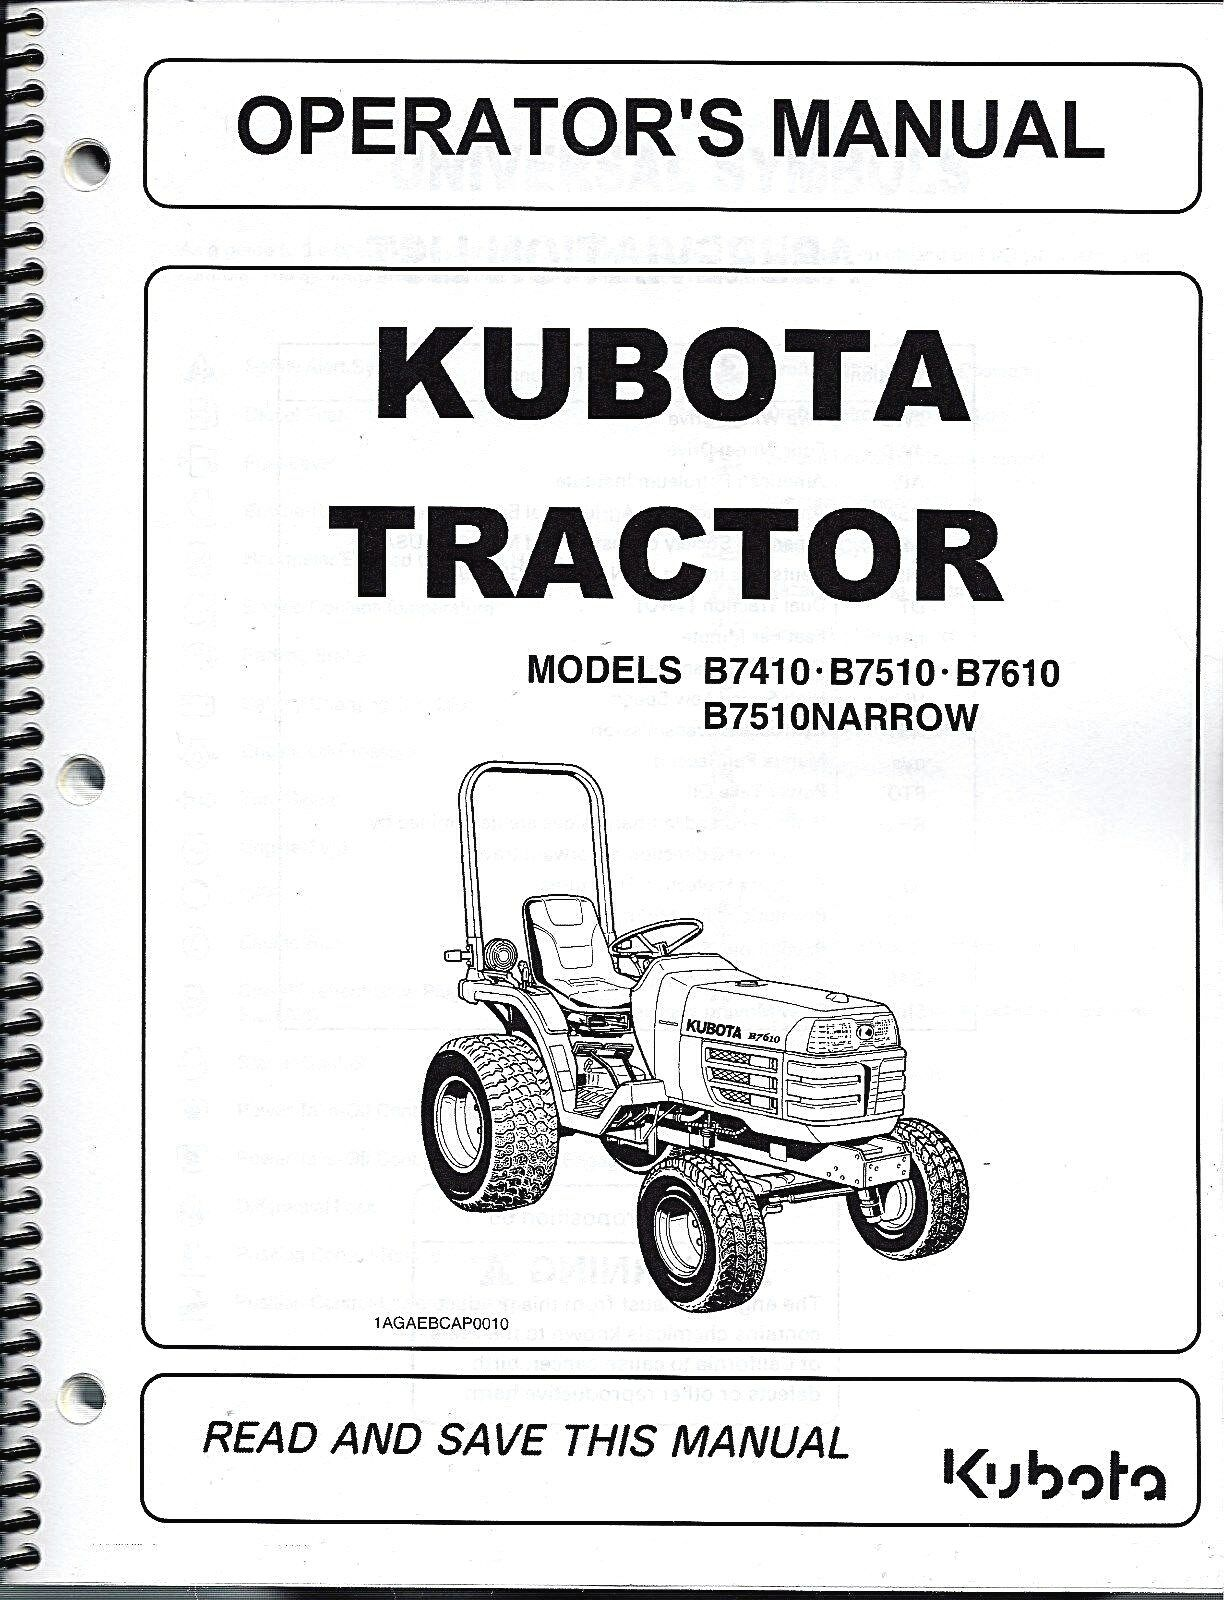 Kubota B7410, B7510, B7610 Tractor Operator Manual 6C190-63112 1 of 1Only 2  available ...